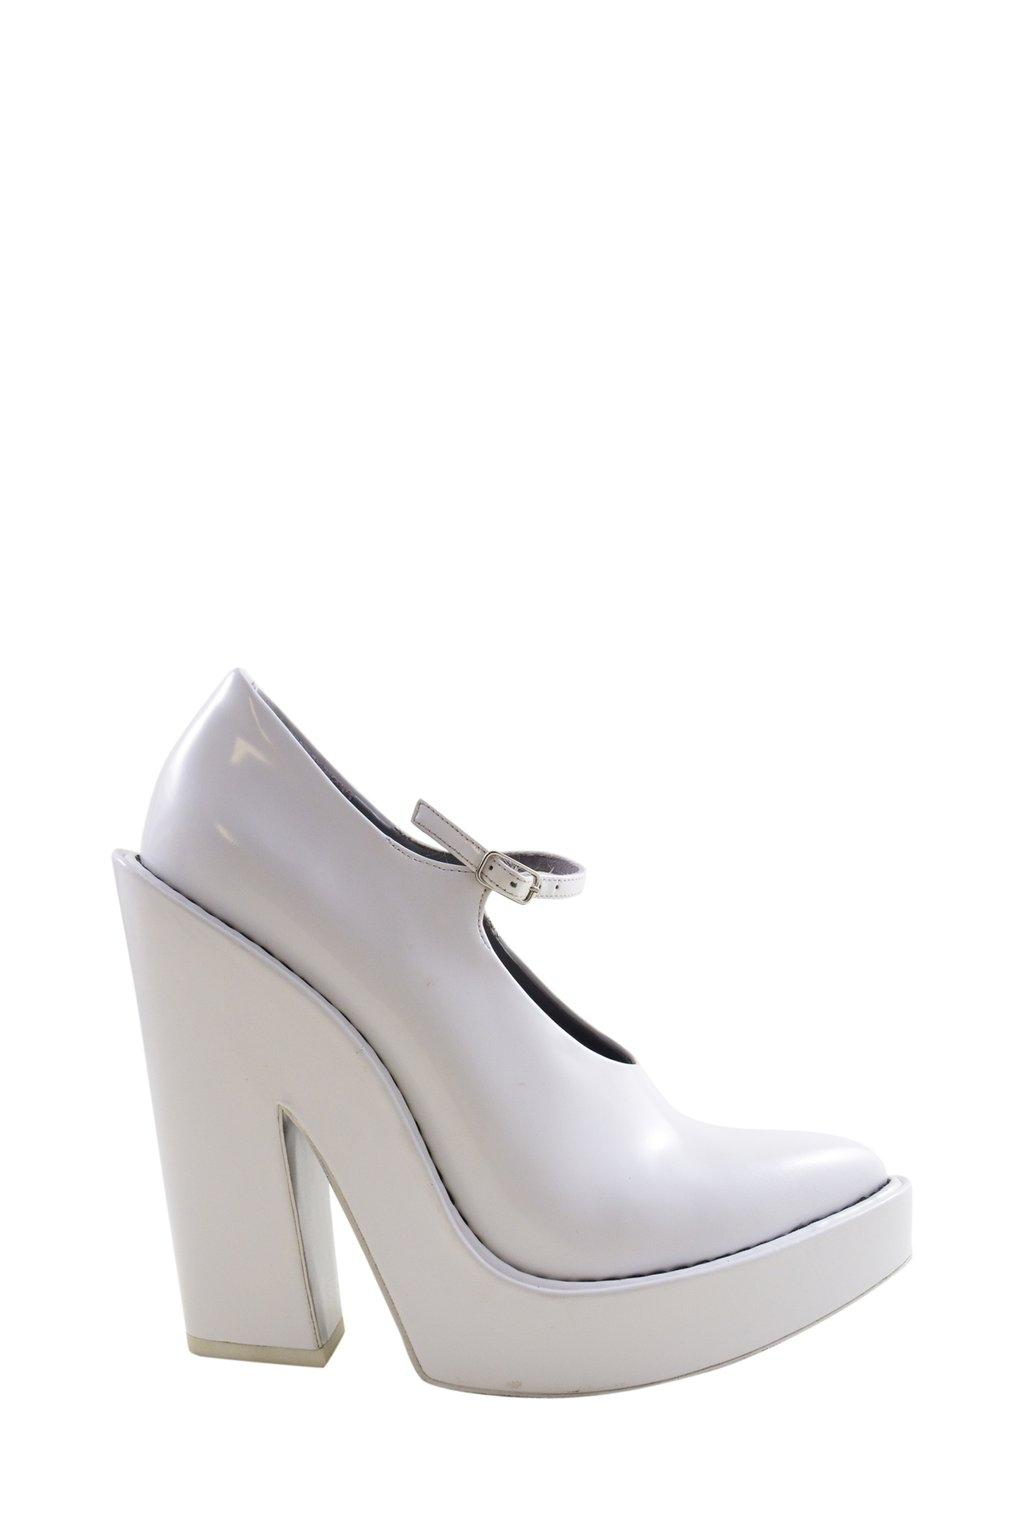 discount best store to get Alexander Wang Jane Leather Pumps w/ Tags sale under $60 lowest price cheap price ImyzGB9gG